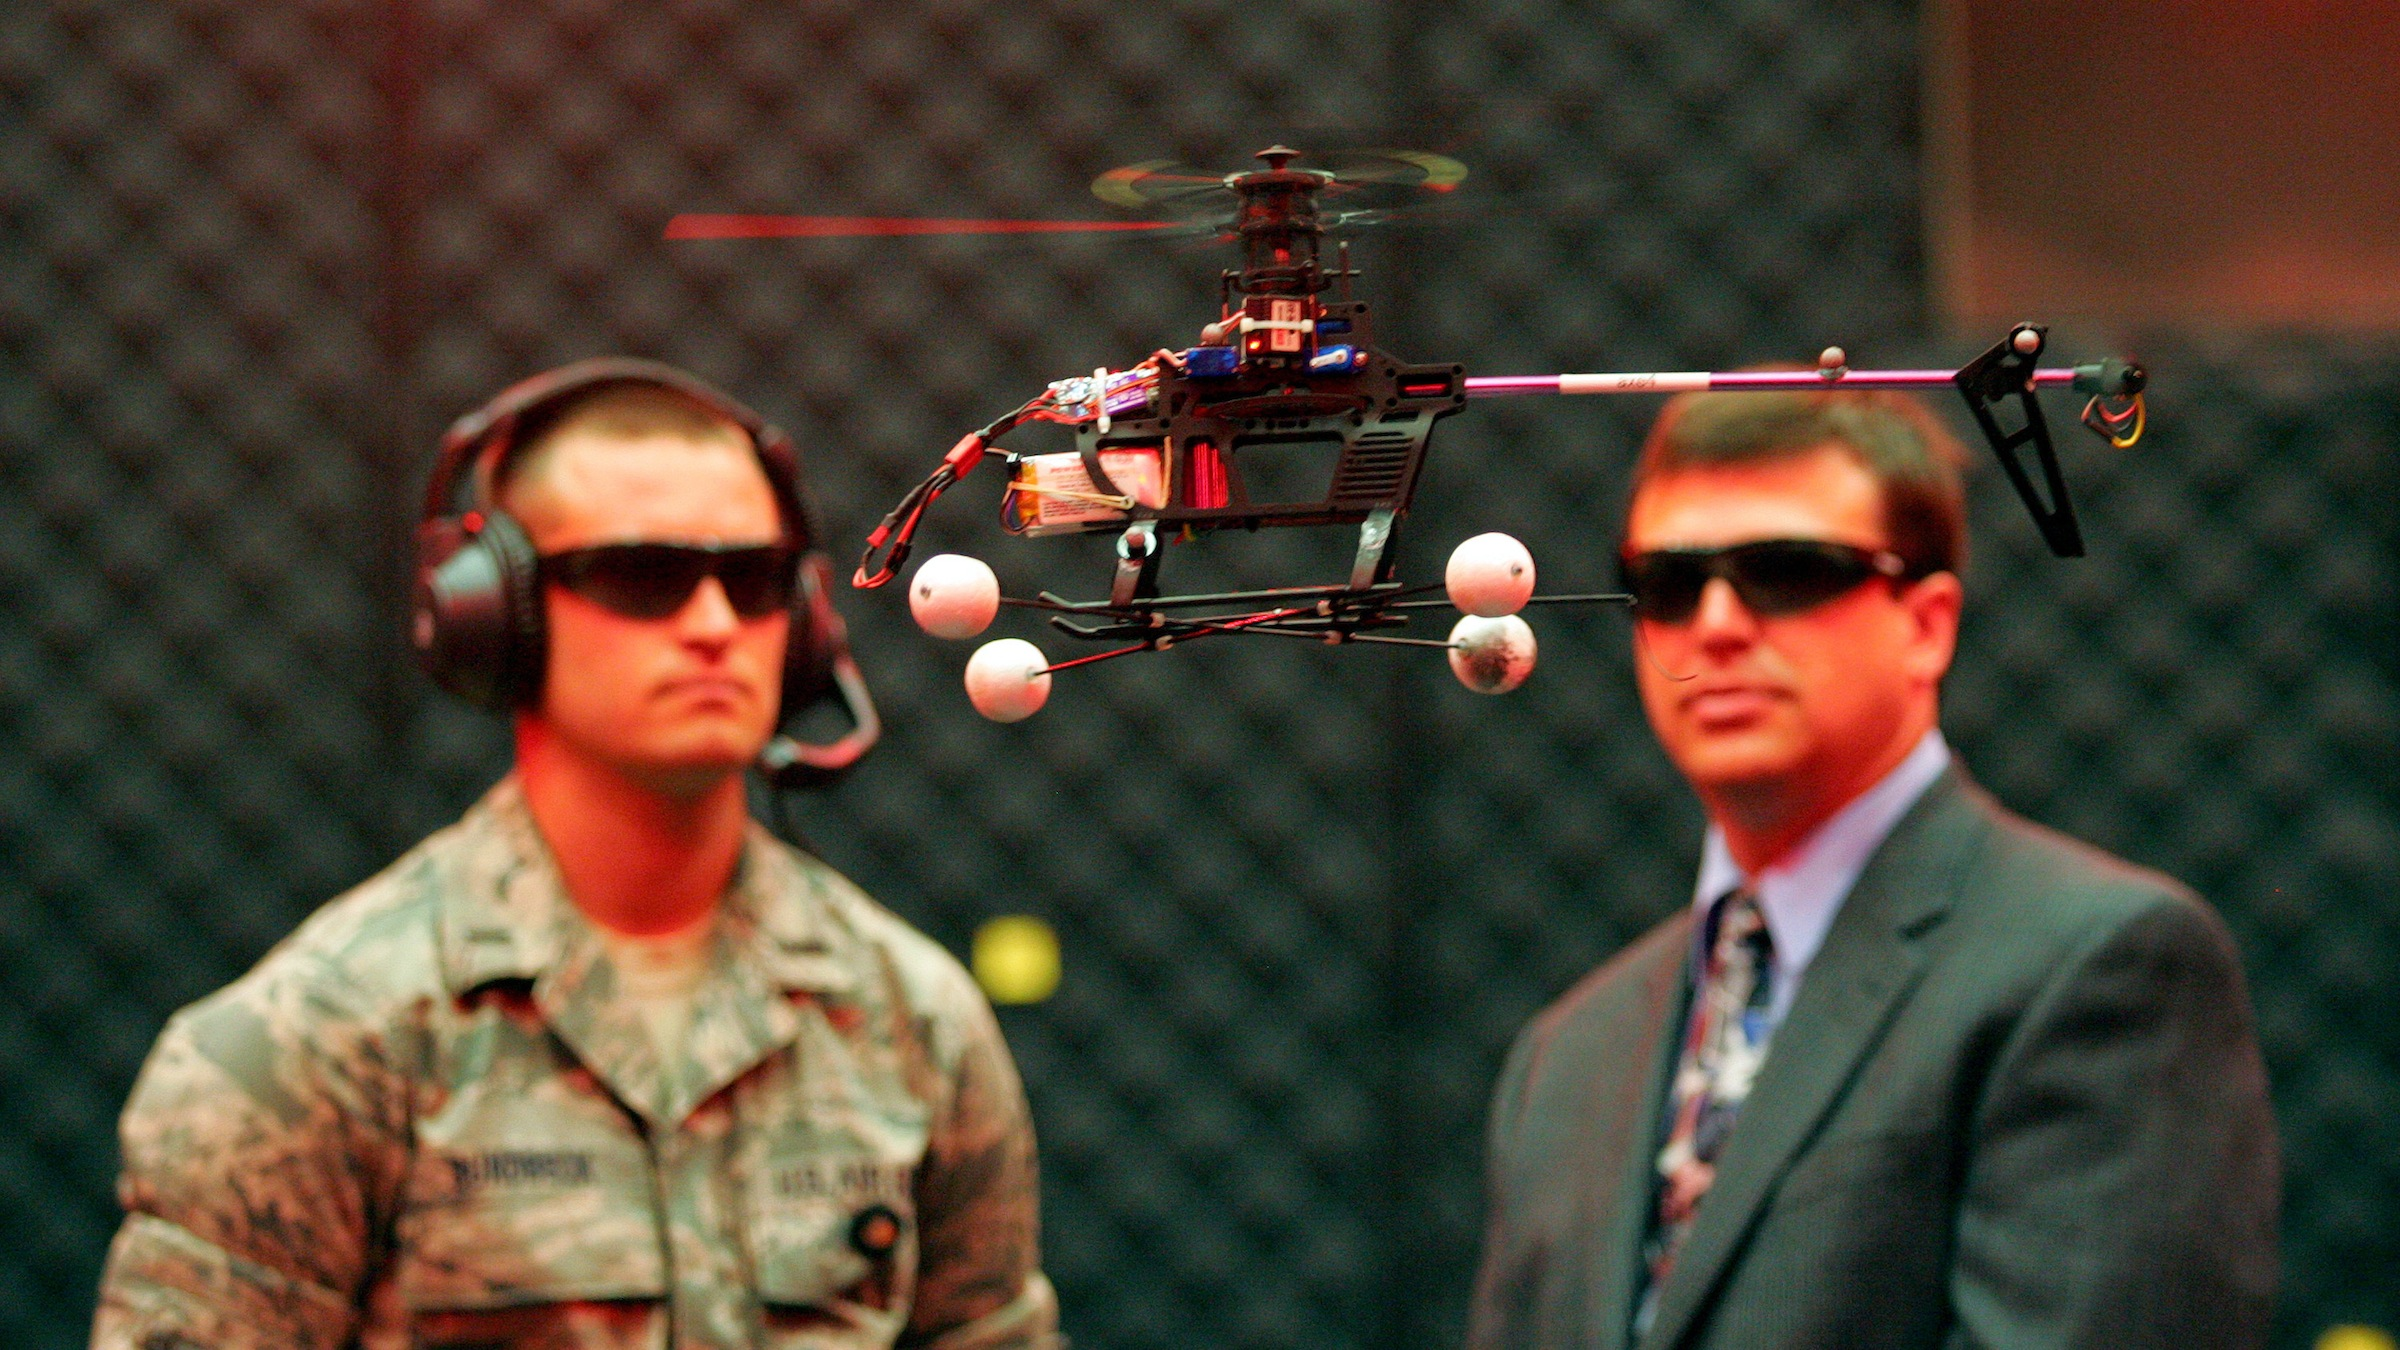 US drones will have a cool reception.